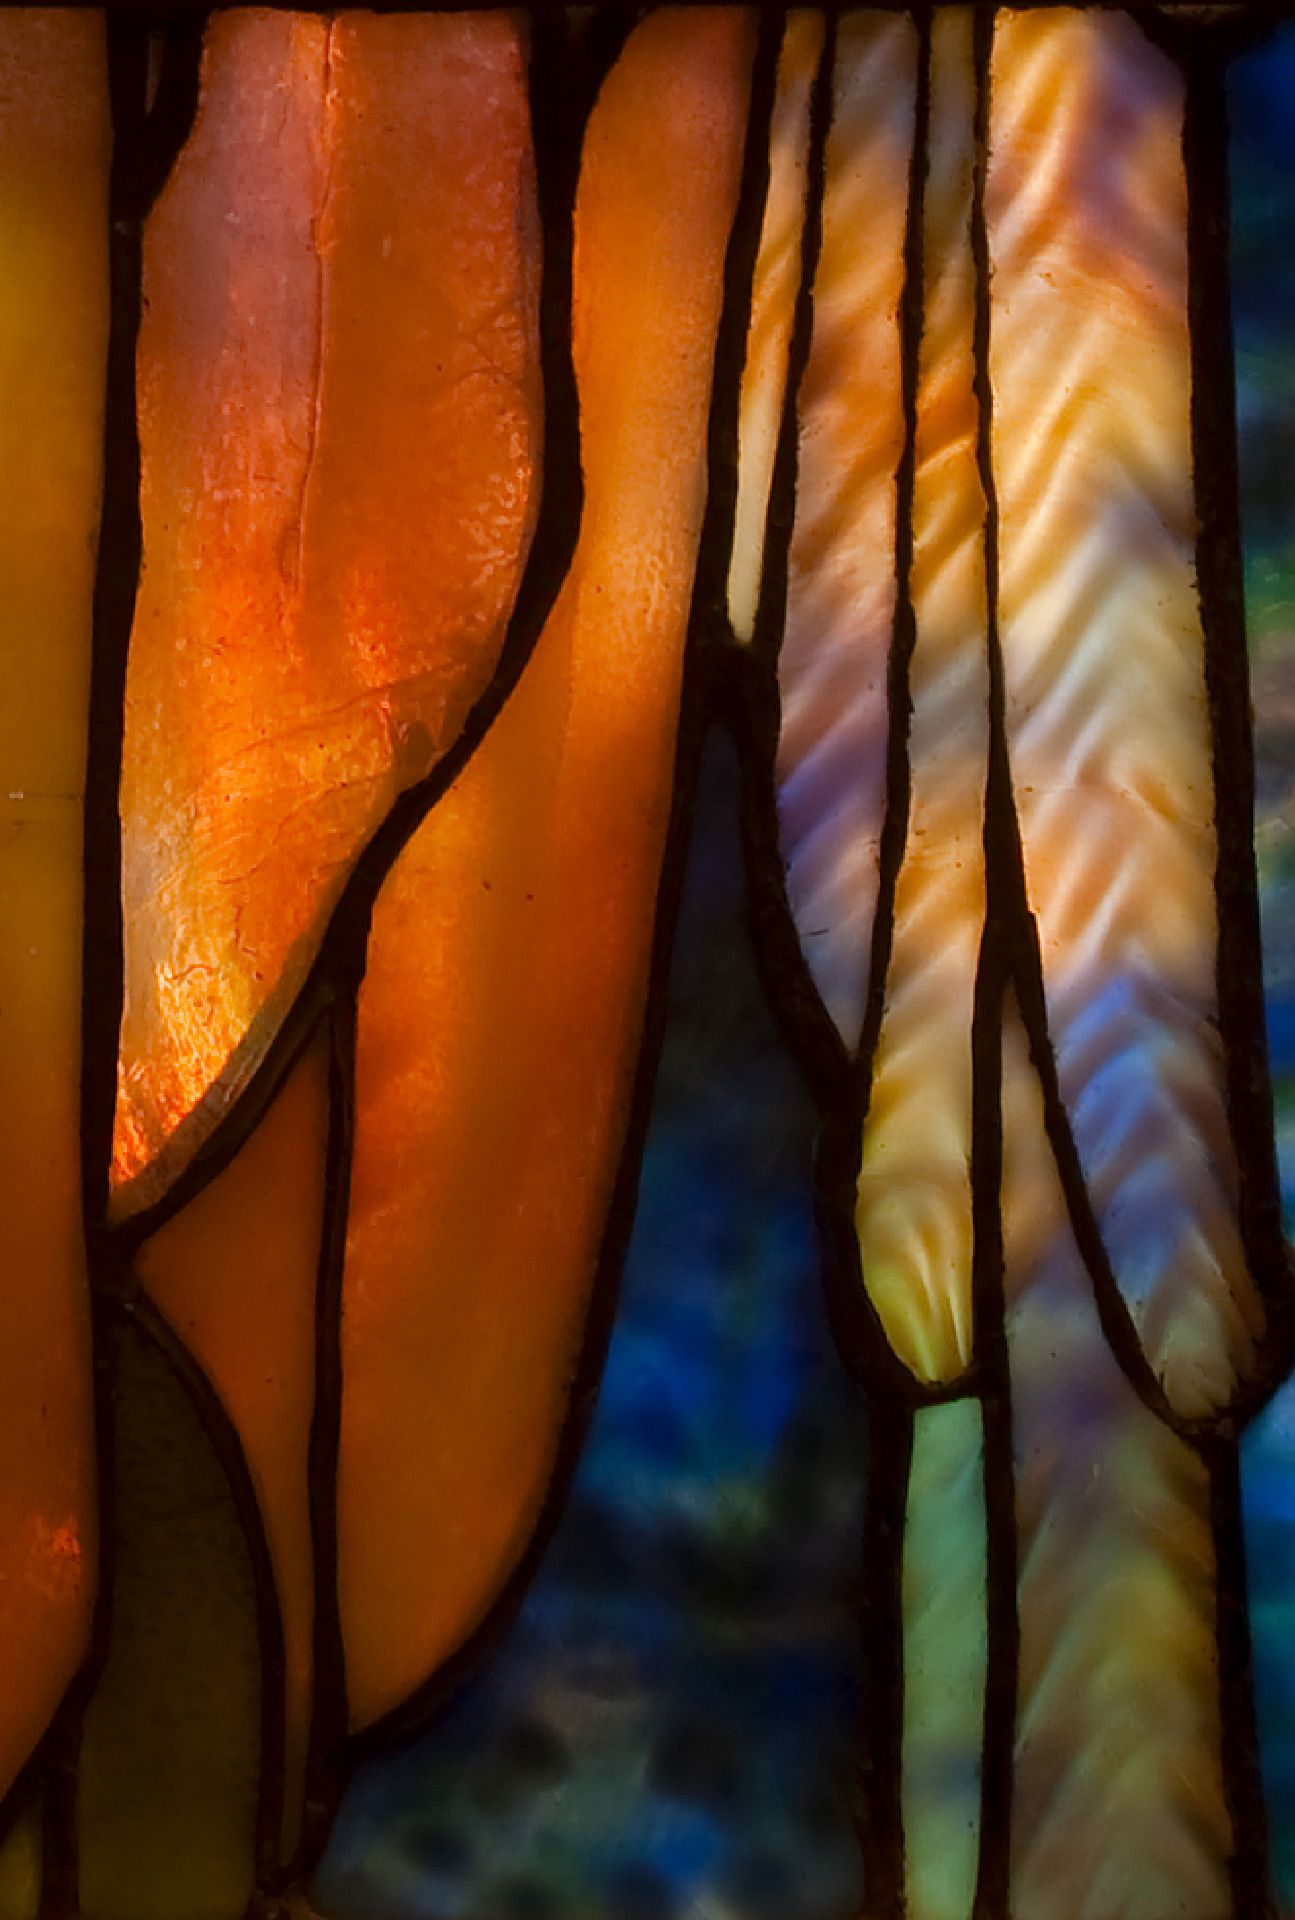 Angel of Glory stained-glass window by Louis Comfort Tiffany, 1902